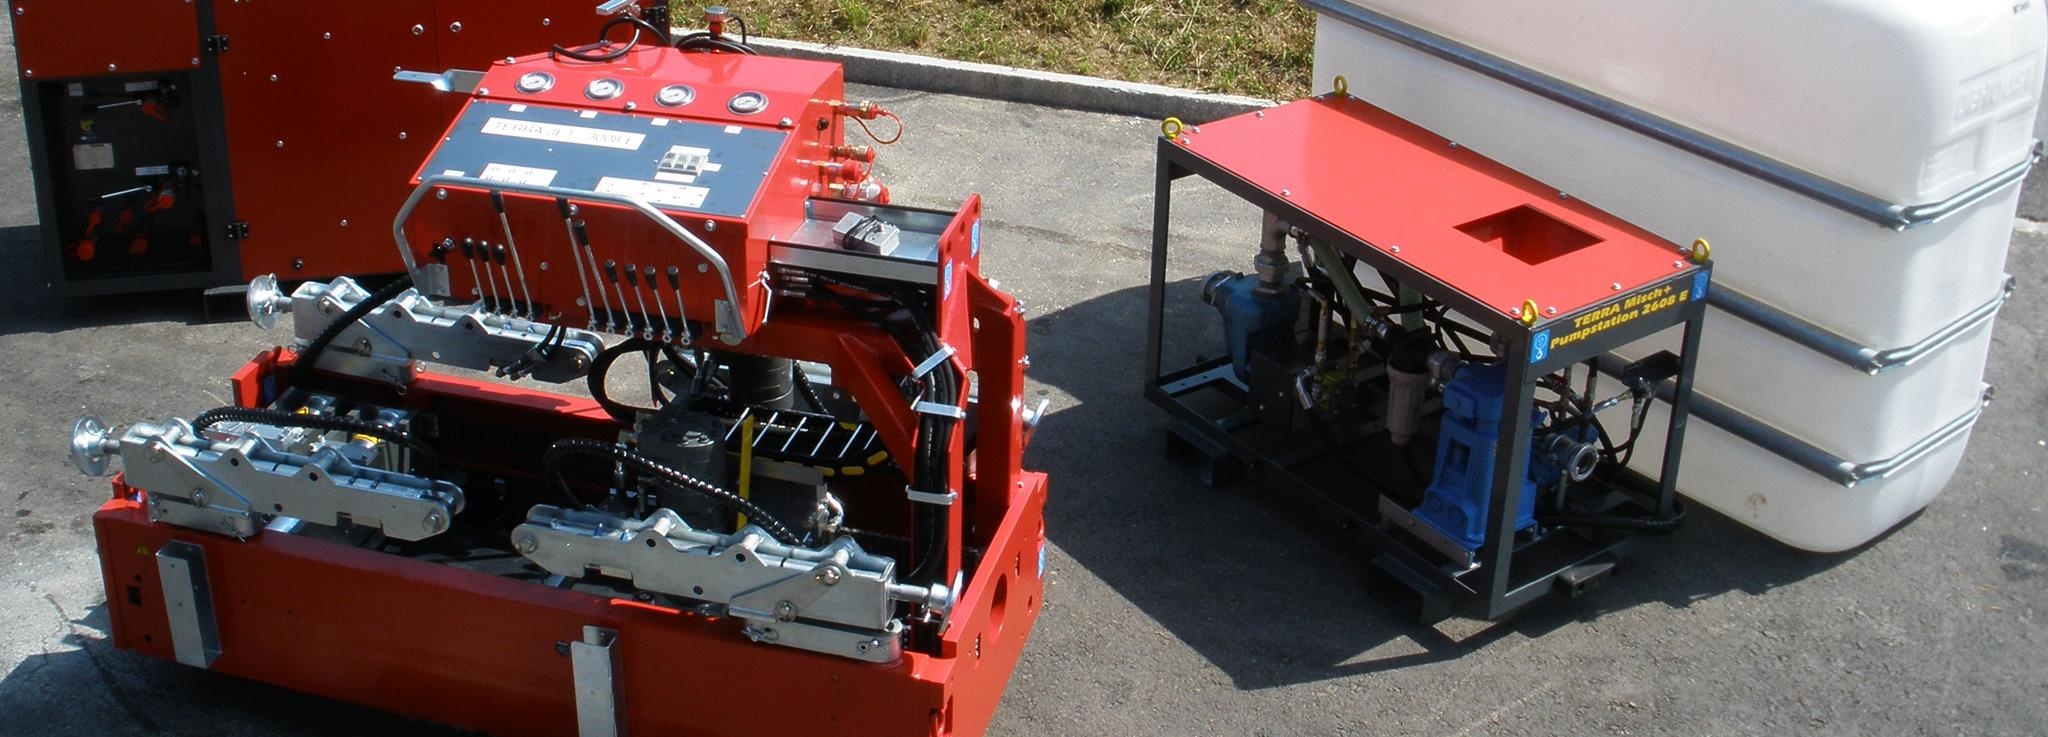 Trenchless Technology HDD drilling machines and piercing tools